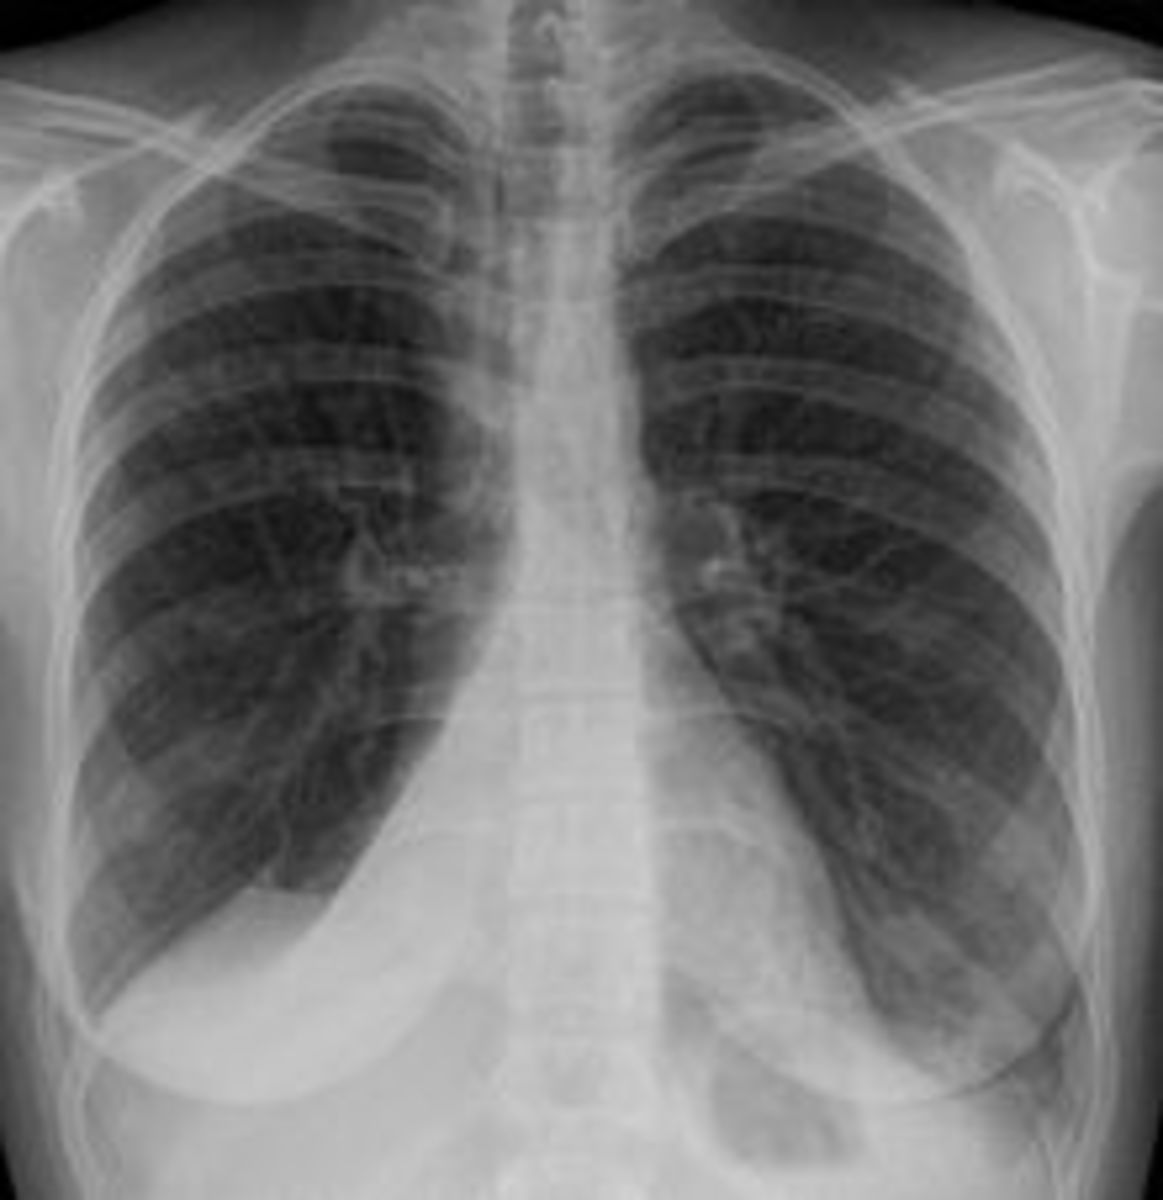 Rounded atelectasis is usually a complication of asbestos-induced disease of the pleura, but it may also result from other types of chronic scarring and thickening of the pleura.